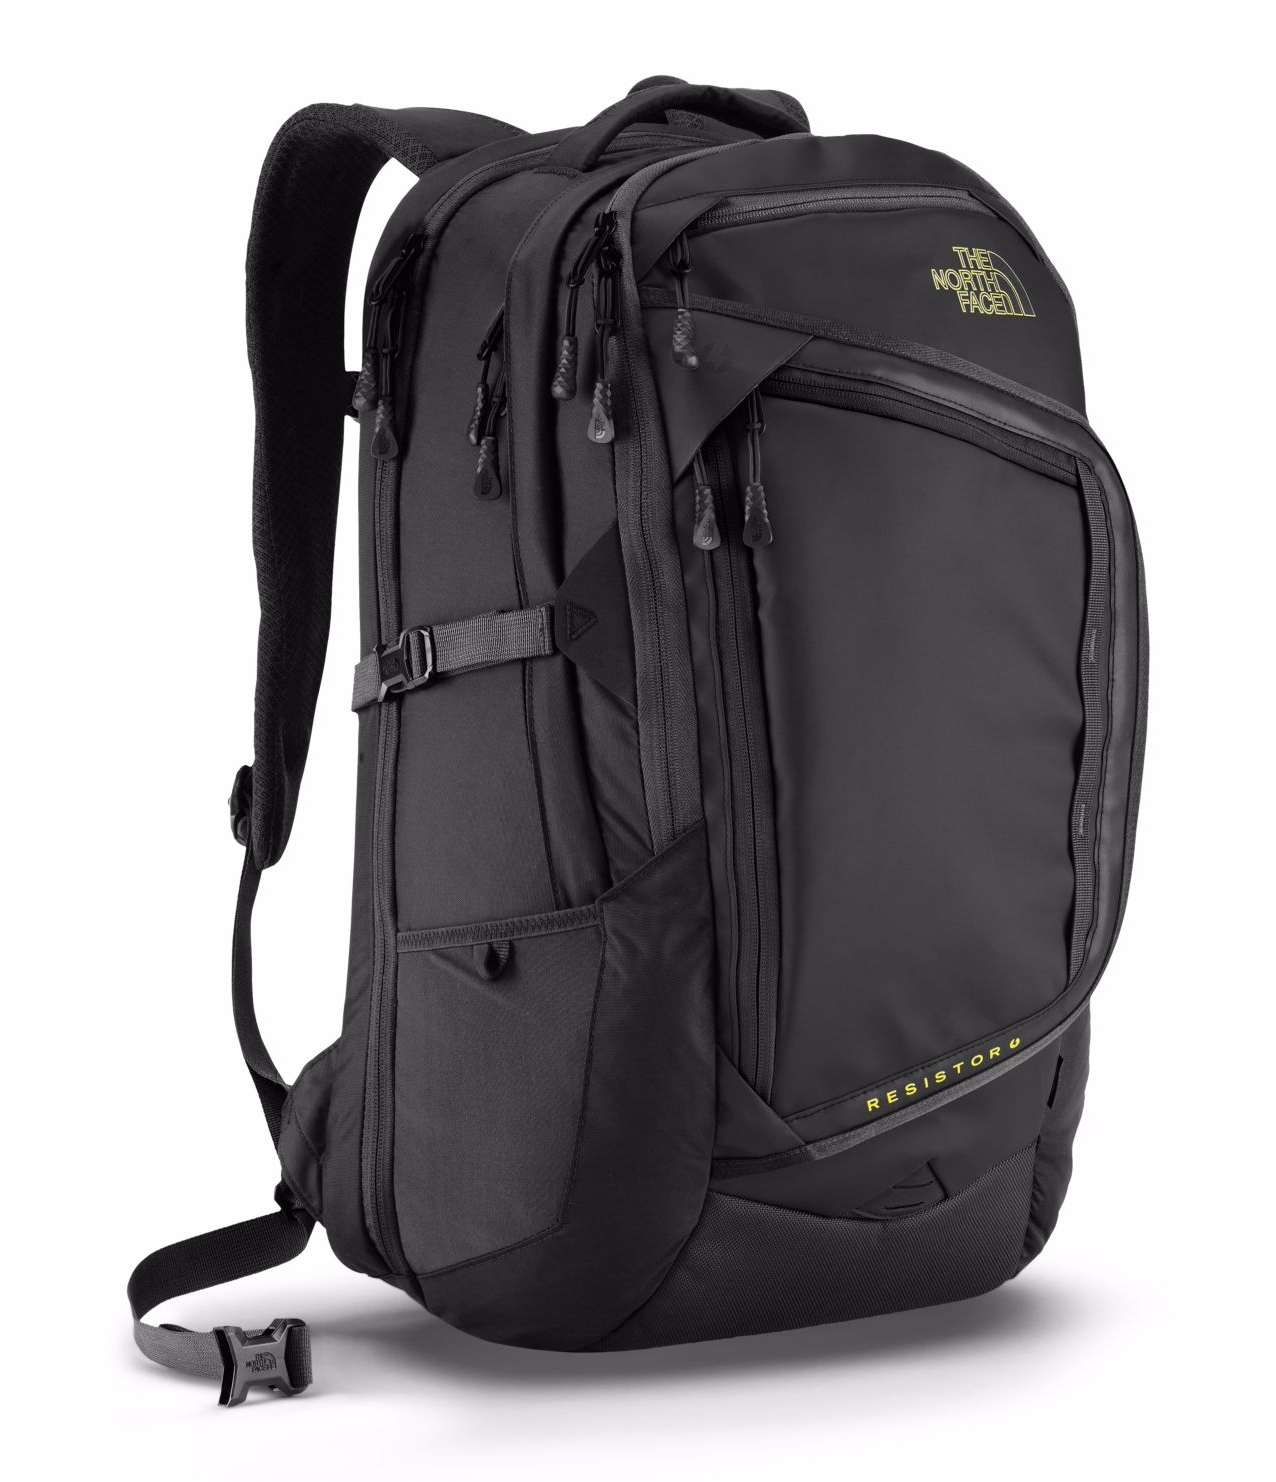 75f82ba25591 The North Face Router Transit Backpack Laptop NF0A2ZCO Model 2016 The North  Face ba lo xin